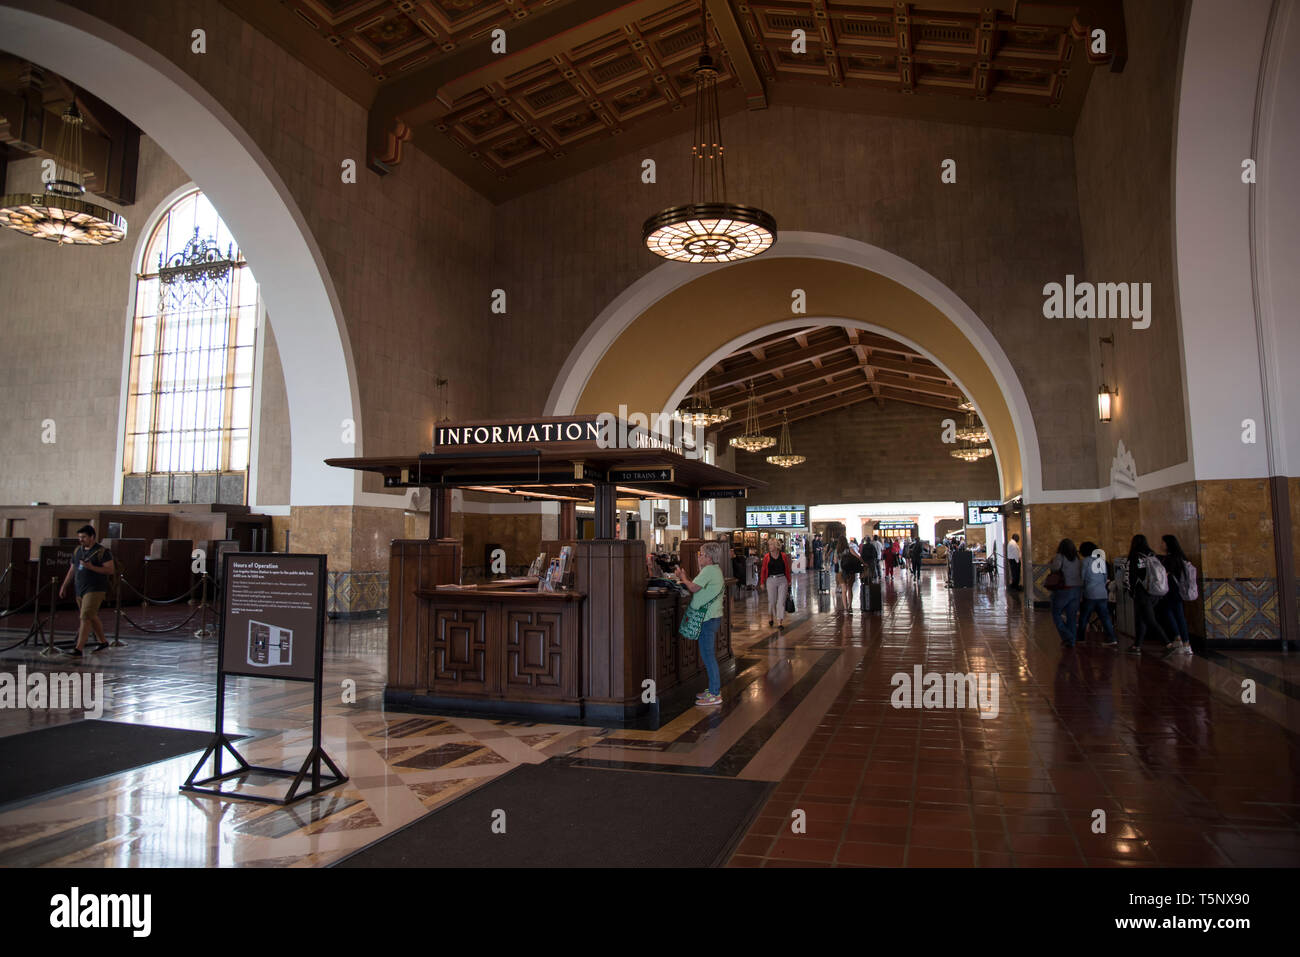 LOS ANGELES, CA/USA  - APRIL 14, 2019: Information desk in the beautiful Union Station in Downtown Los Angeles - Stock Image